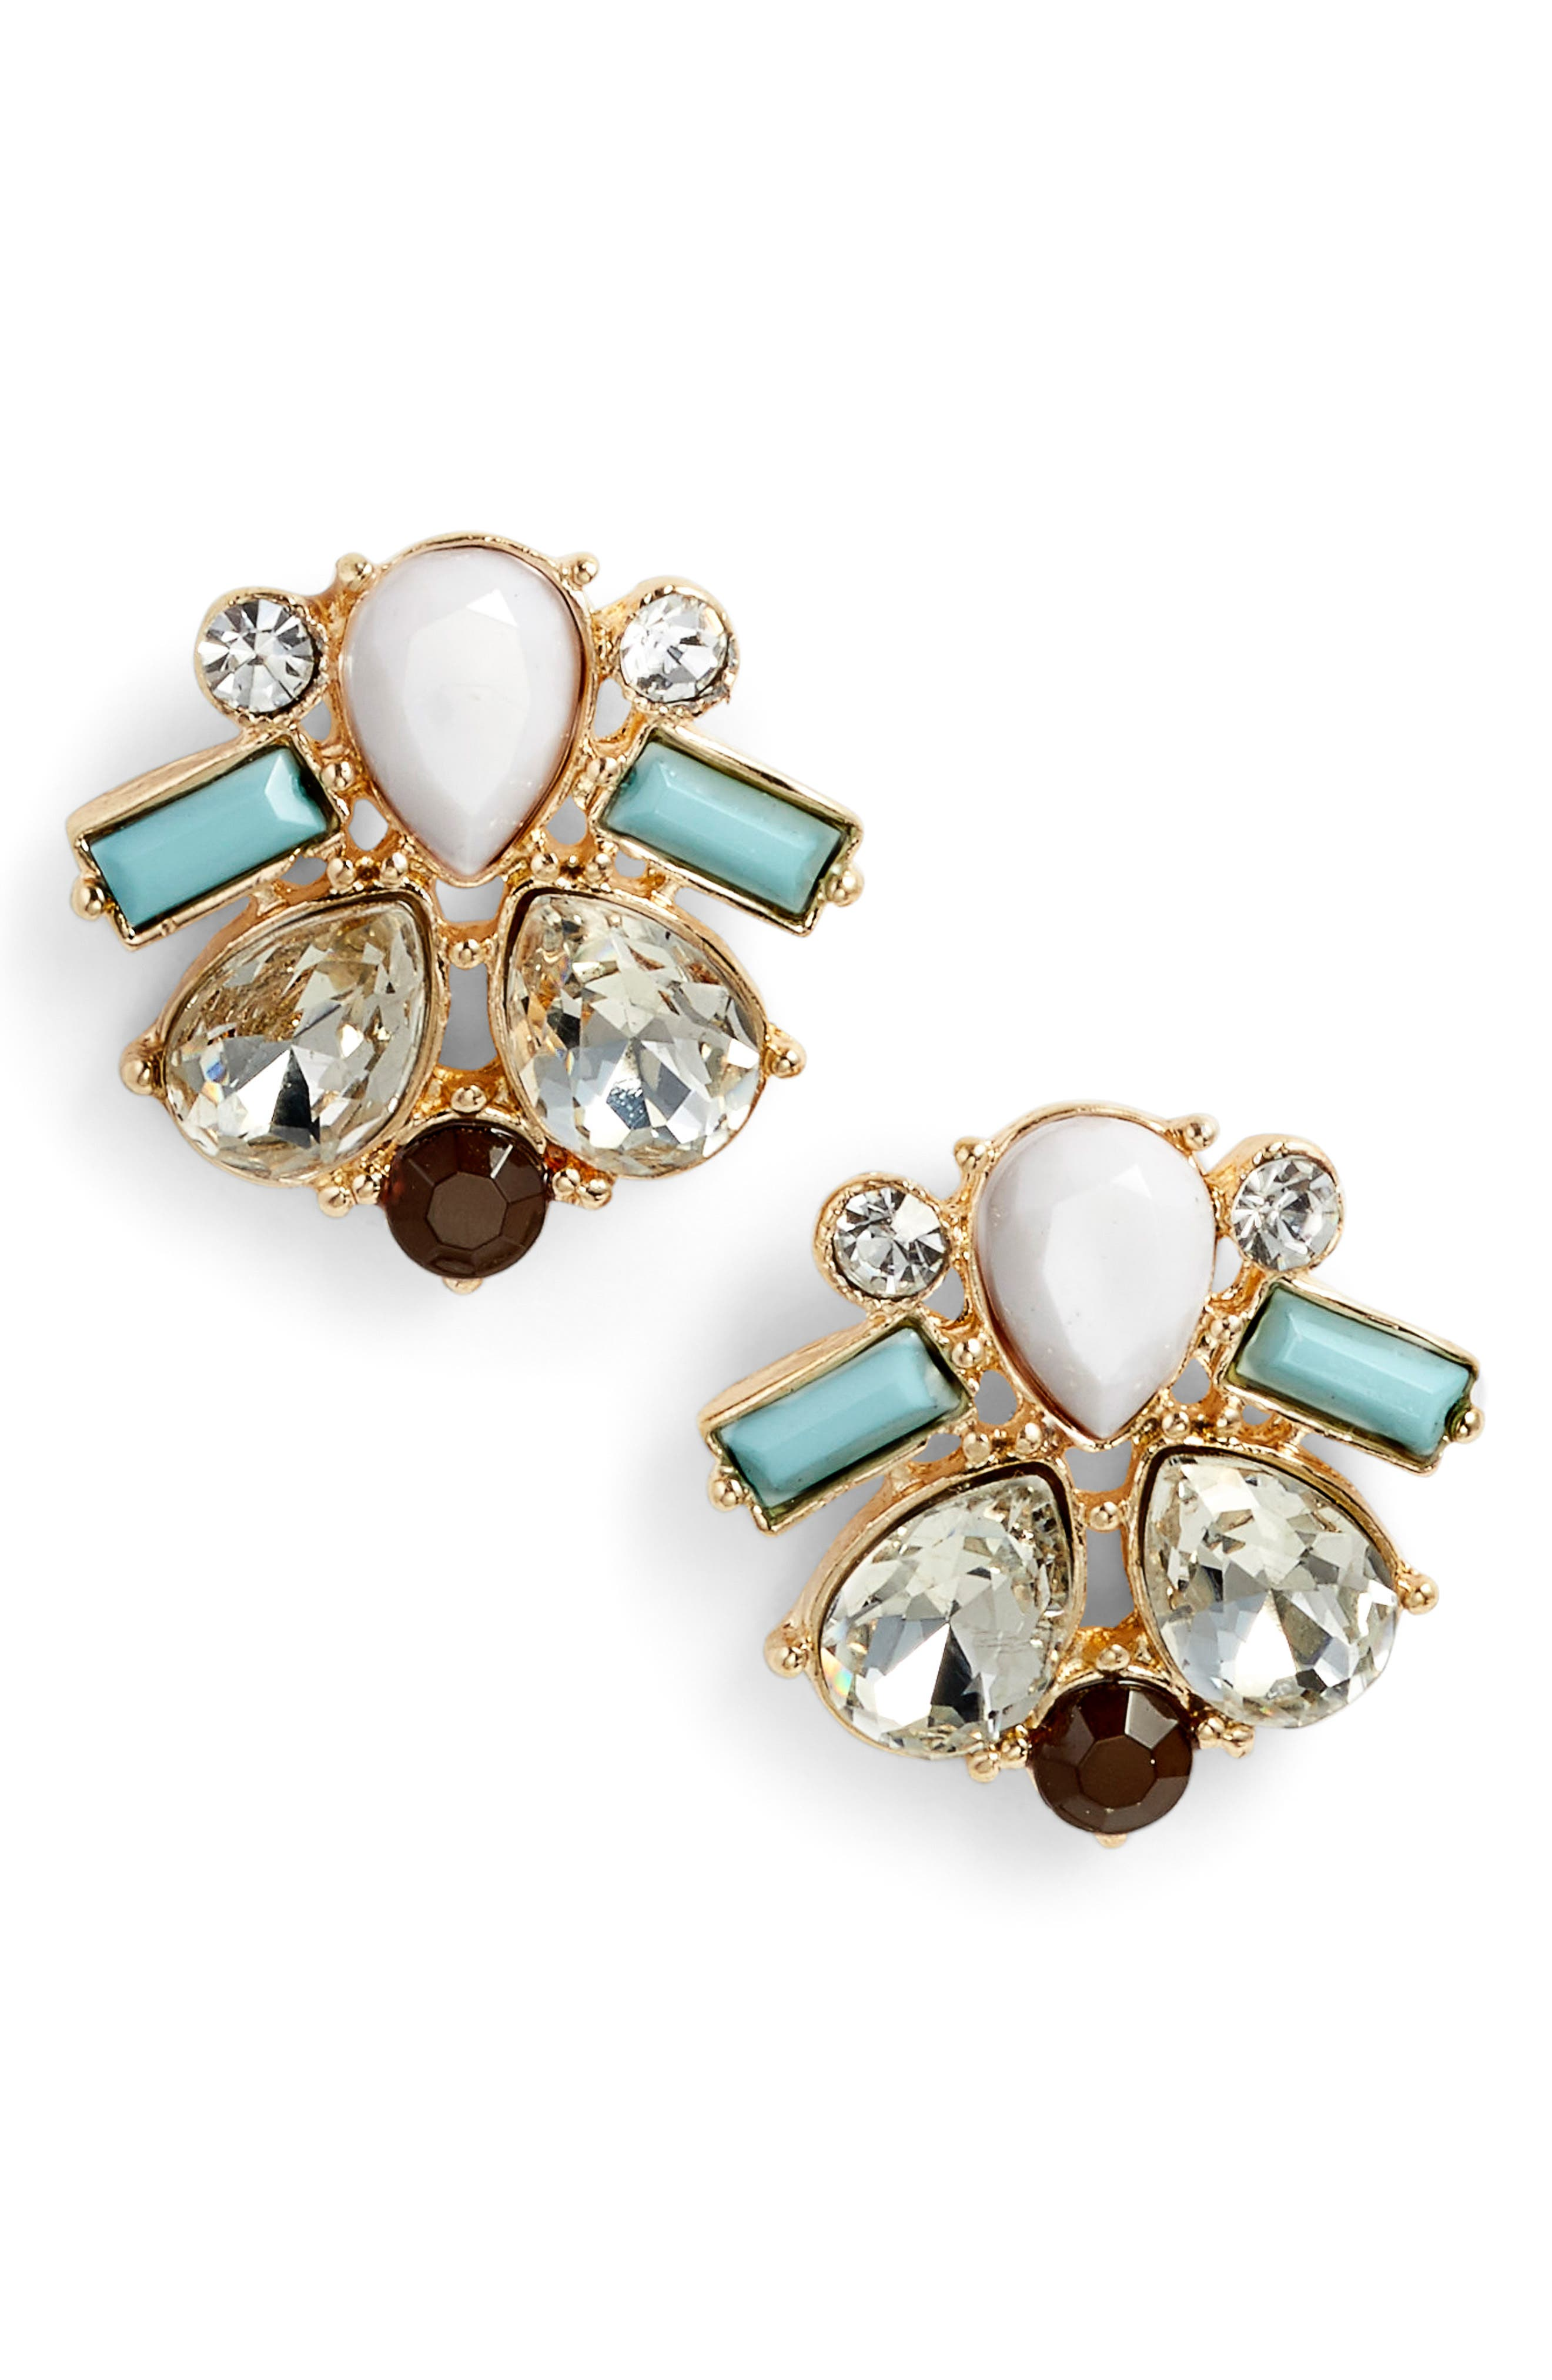 Crystal & Stone Stud Earrings,                             Main thumbnail 1, color,                             650